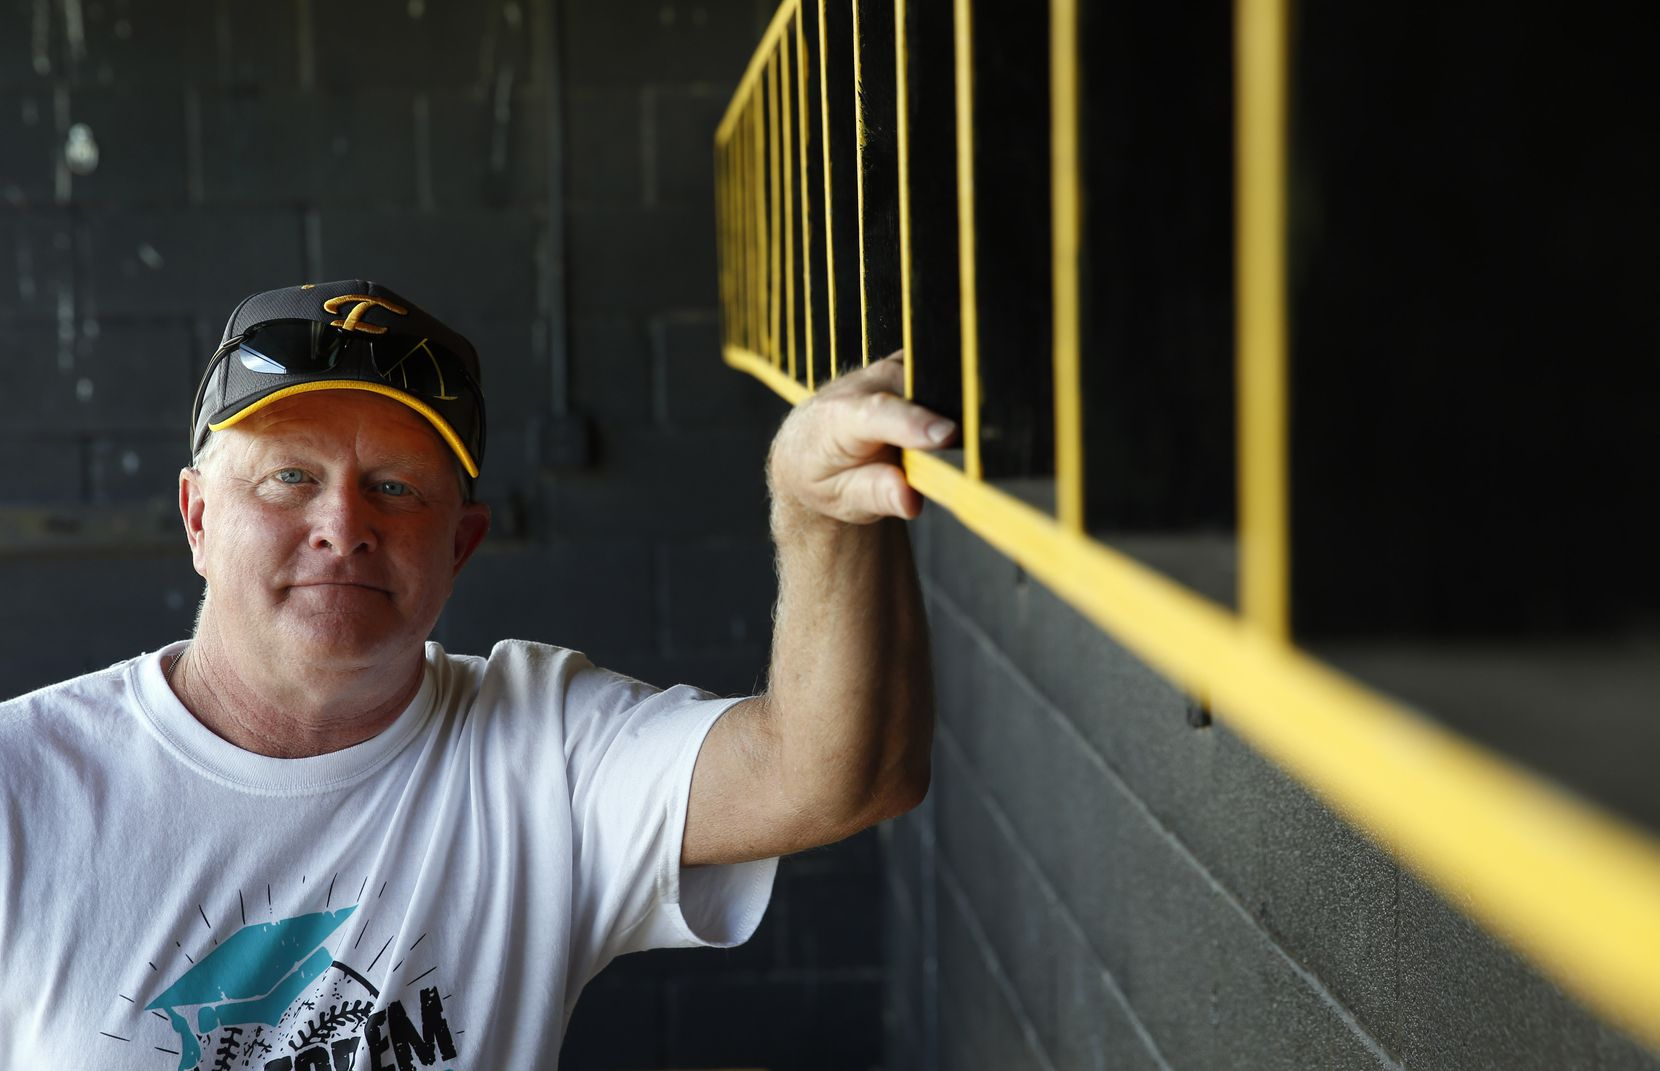 Forney High School's head softball coach Pat Eitel poses for a portrait in the dugout of Forney High School's softball field in Forney, on Wednesday, May 27, 2020.